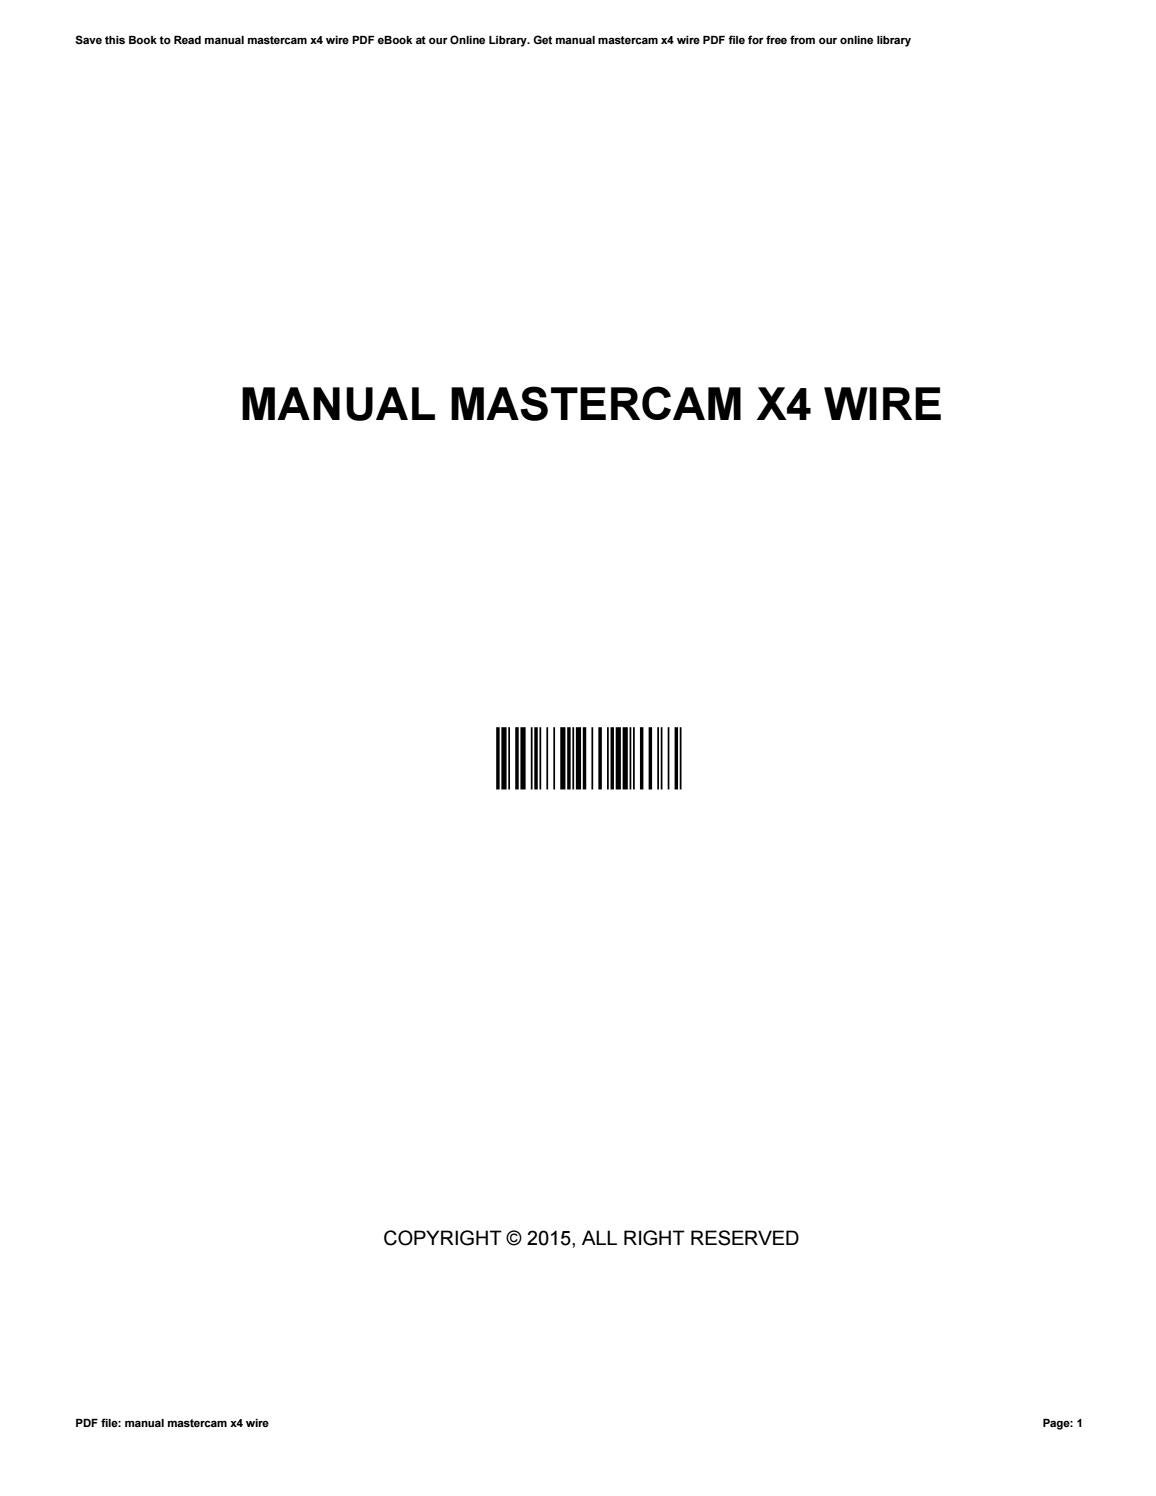 manual mastercam x4 wire by wesleylamb4850 issuu rh issuu com Mastercam Tutorial Mastercam Tutorial